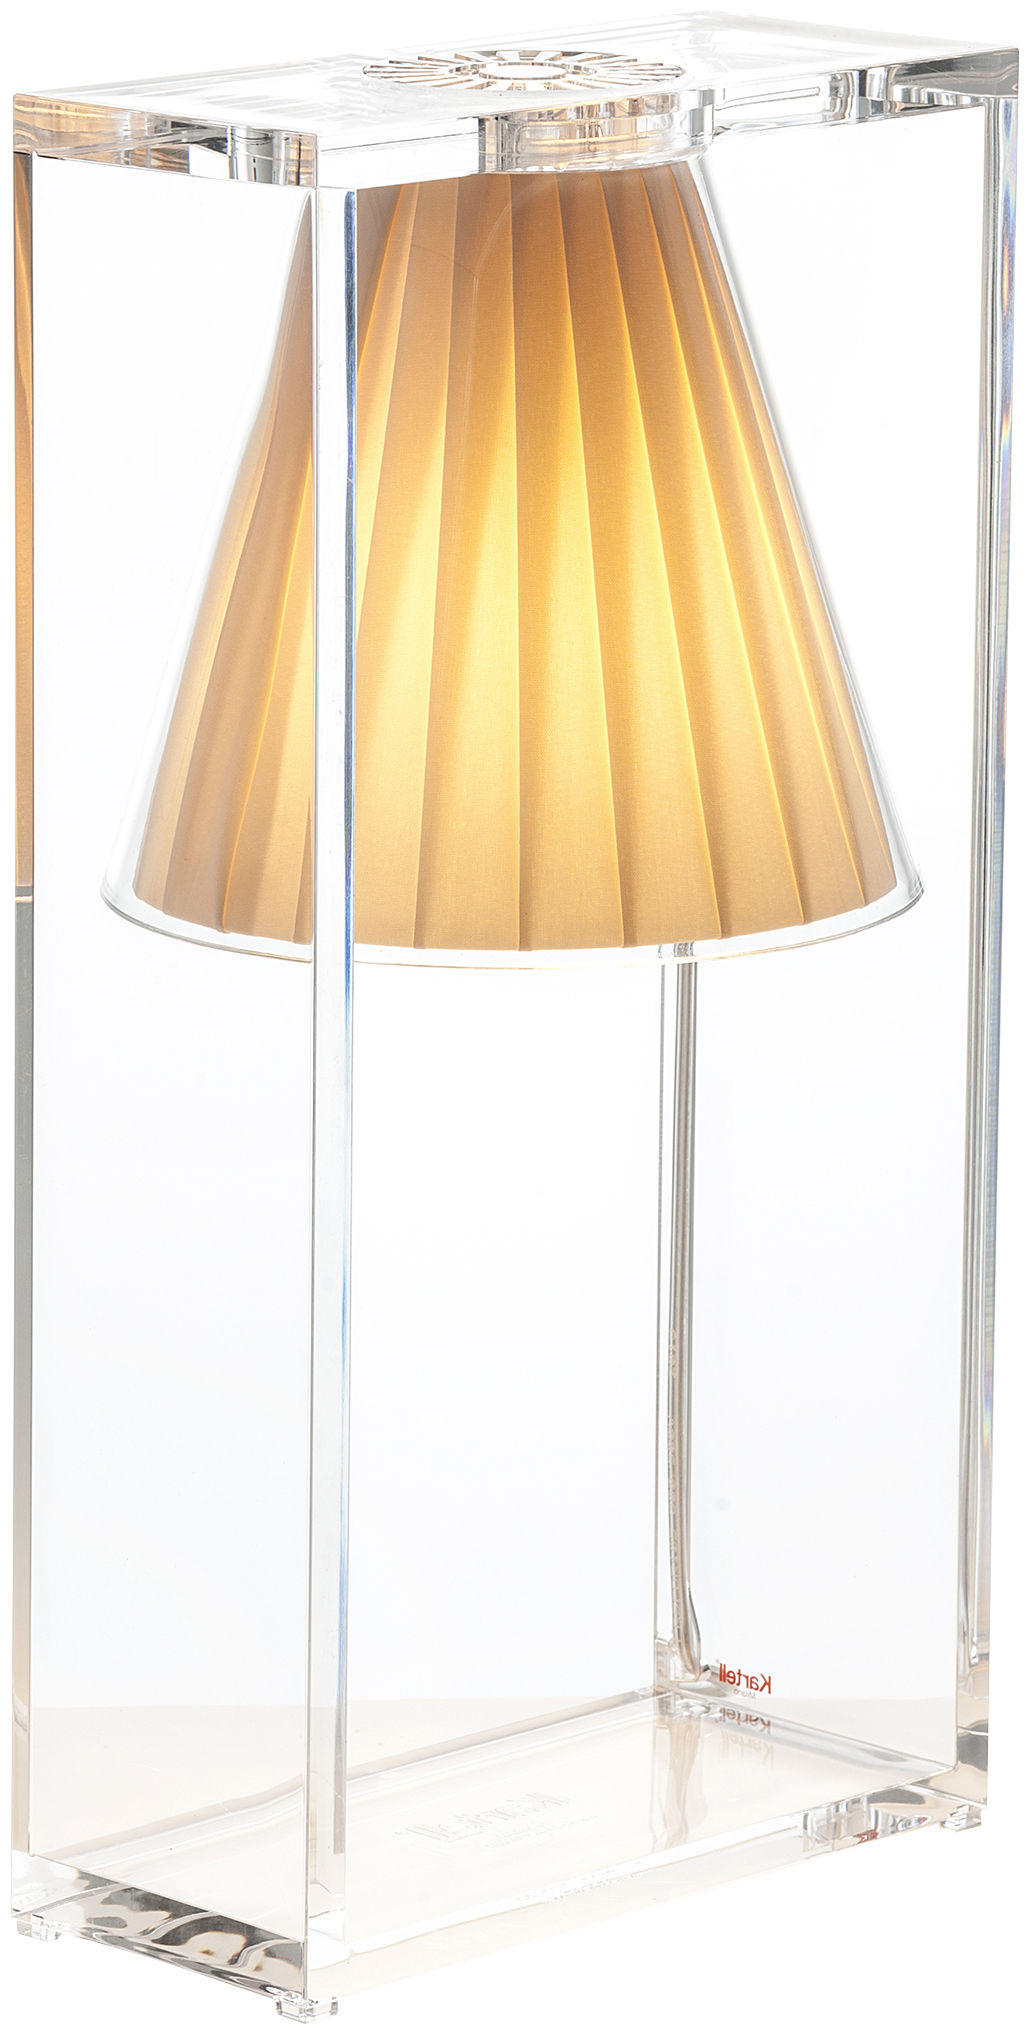 Lighting - Table Lamps - Light-Air Table lamp by Kartell - Beige - Fabric, Thermoplastic technopolymer